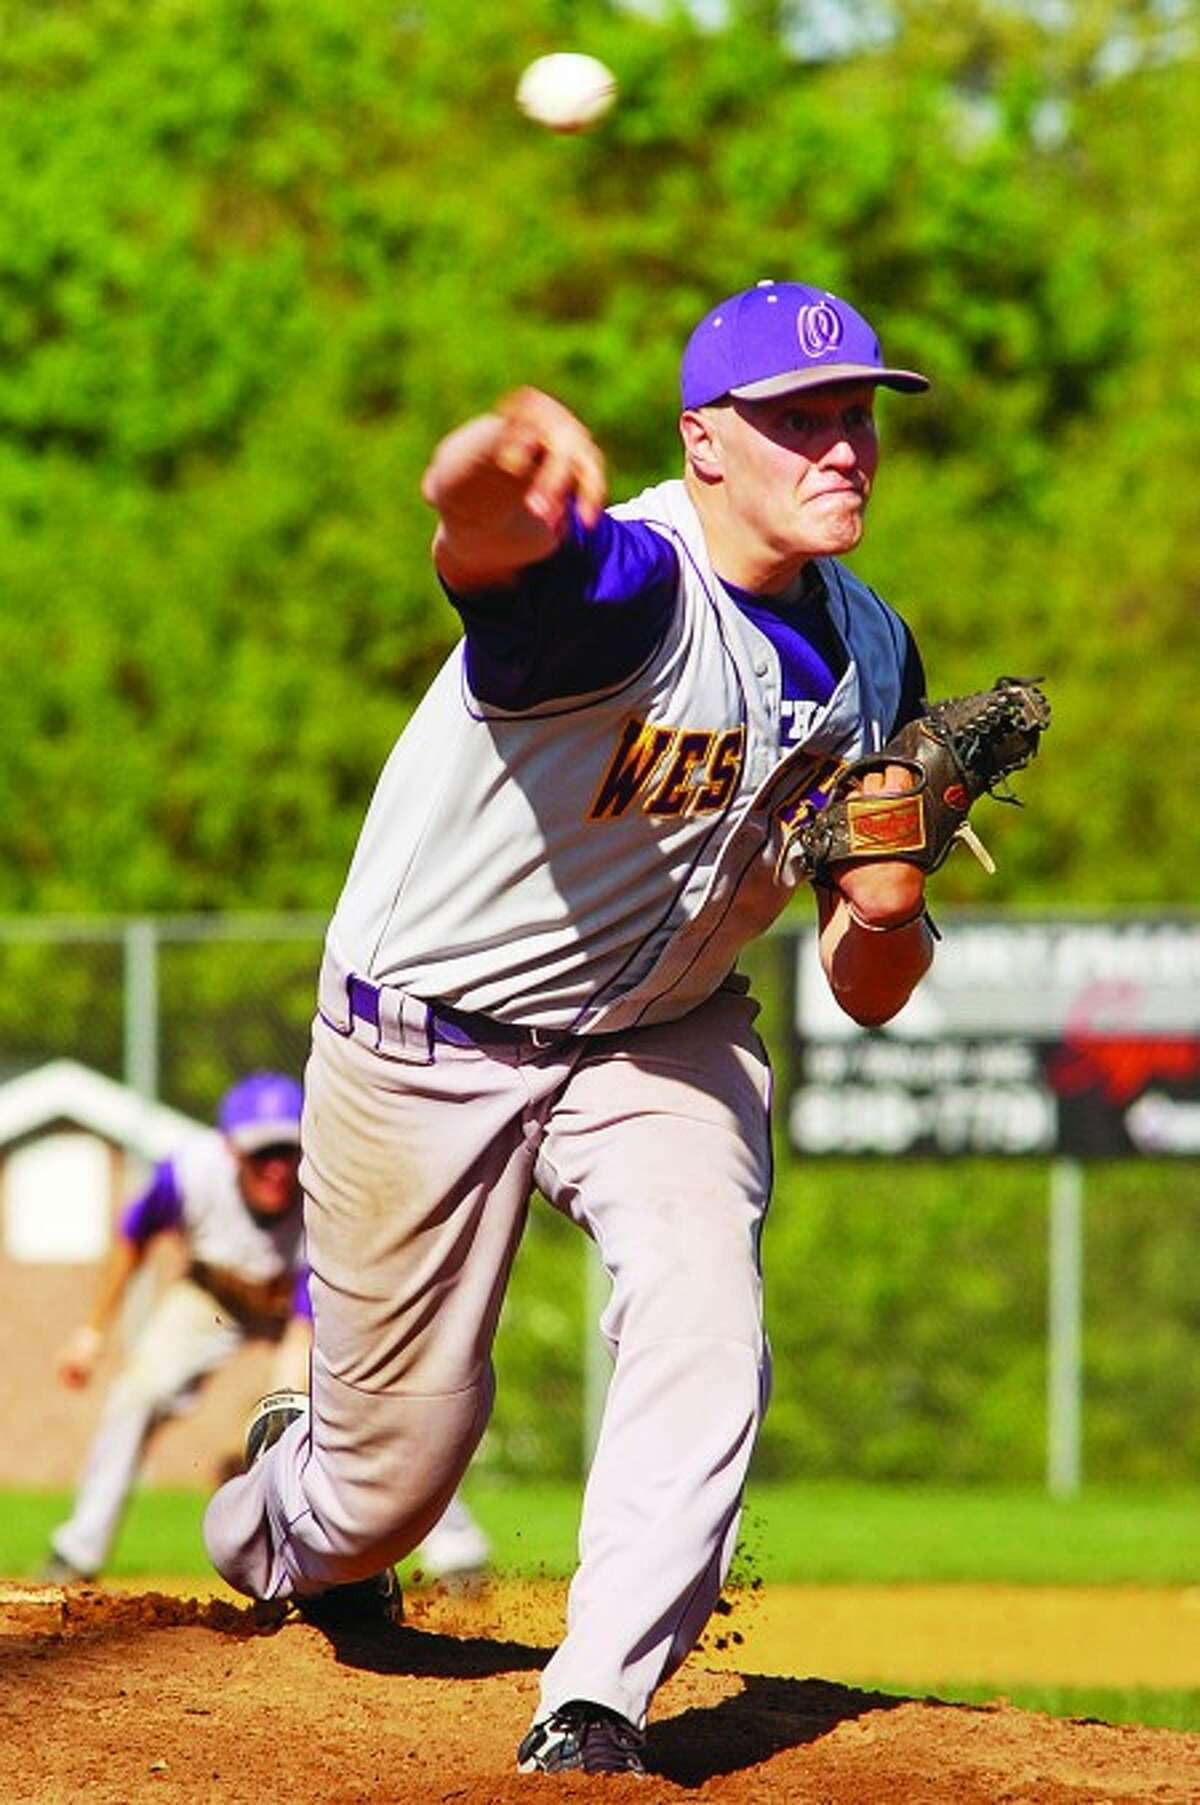 Westhill starting pitcher Morgan Williams is about to throw a pitch against McMahon on Friday, April 30. Times photo/Erik Trautmann